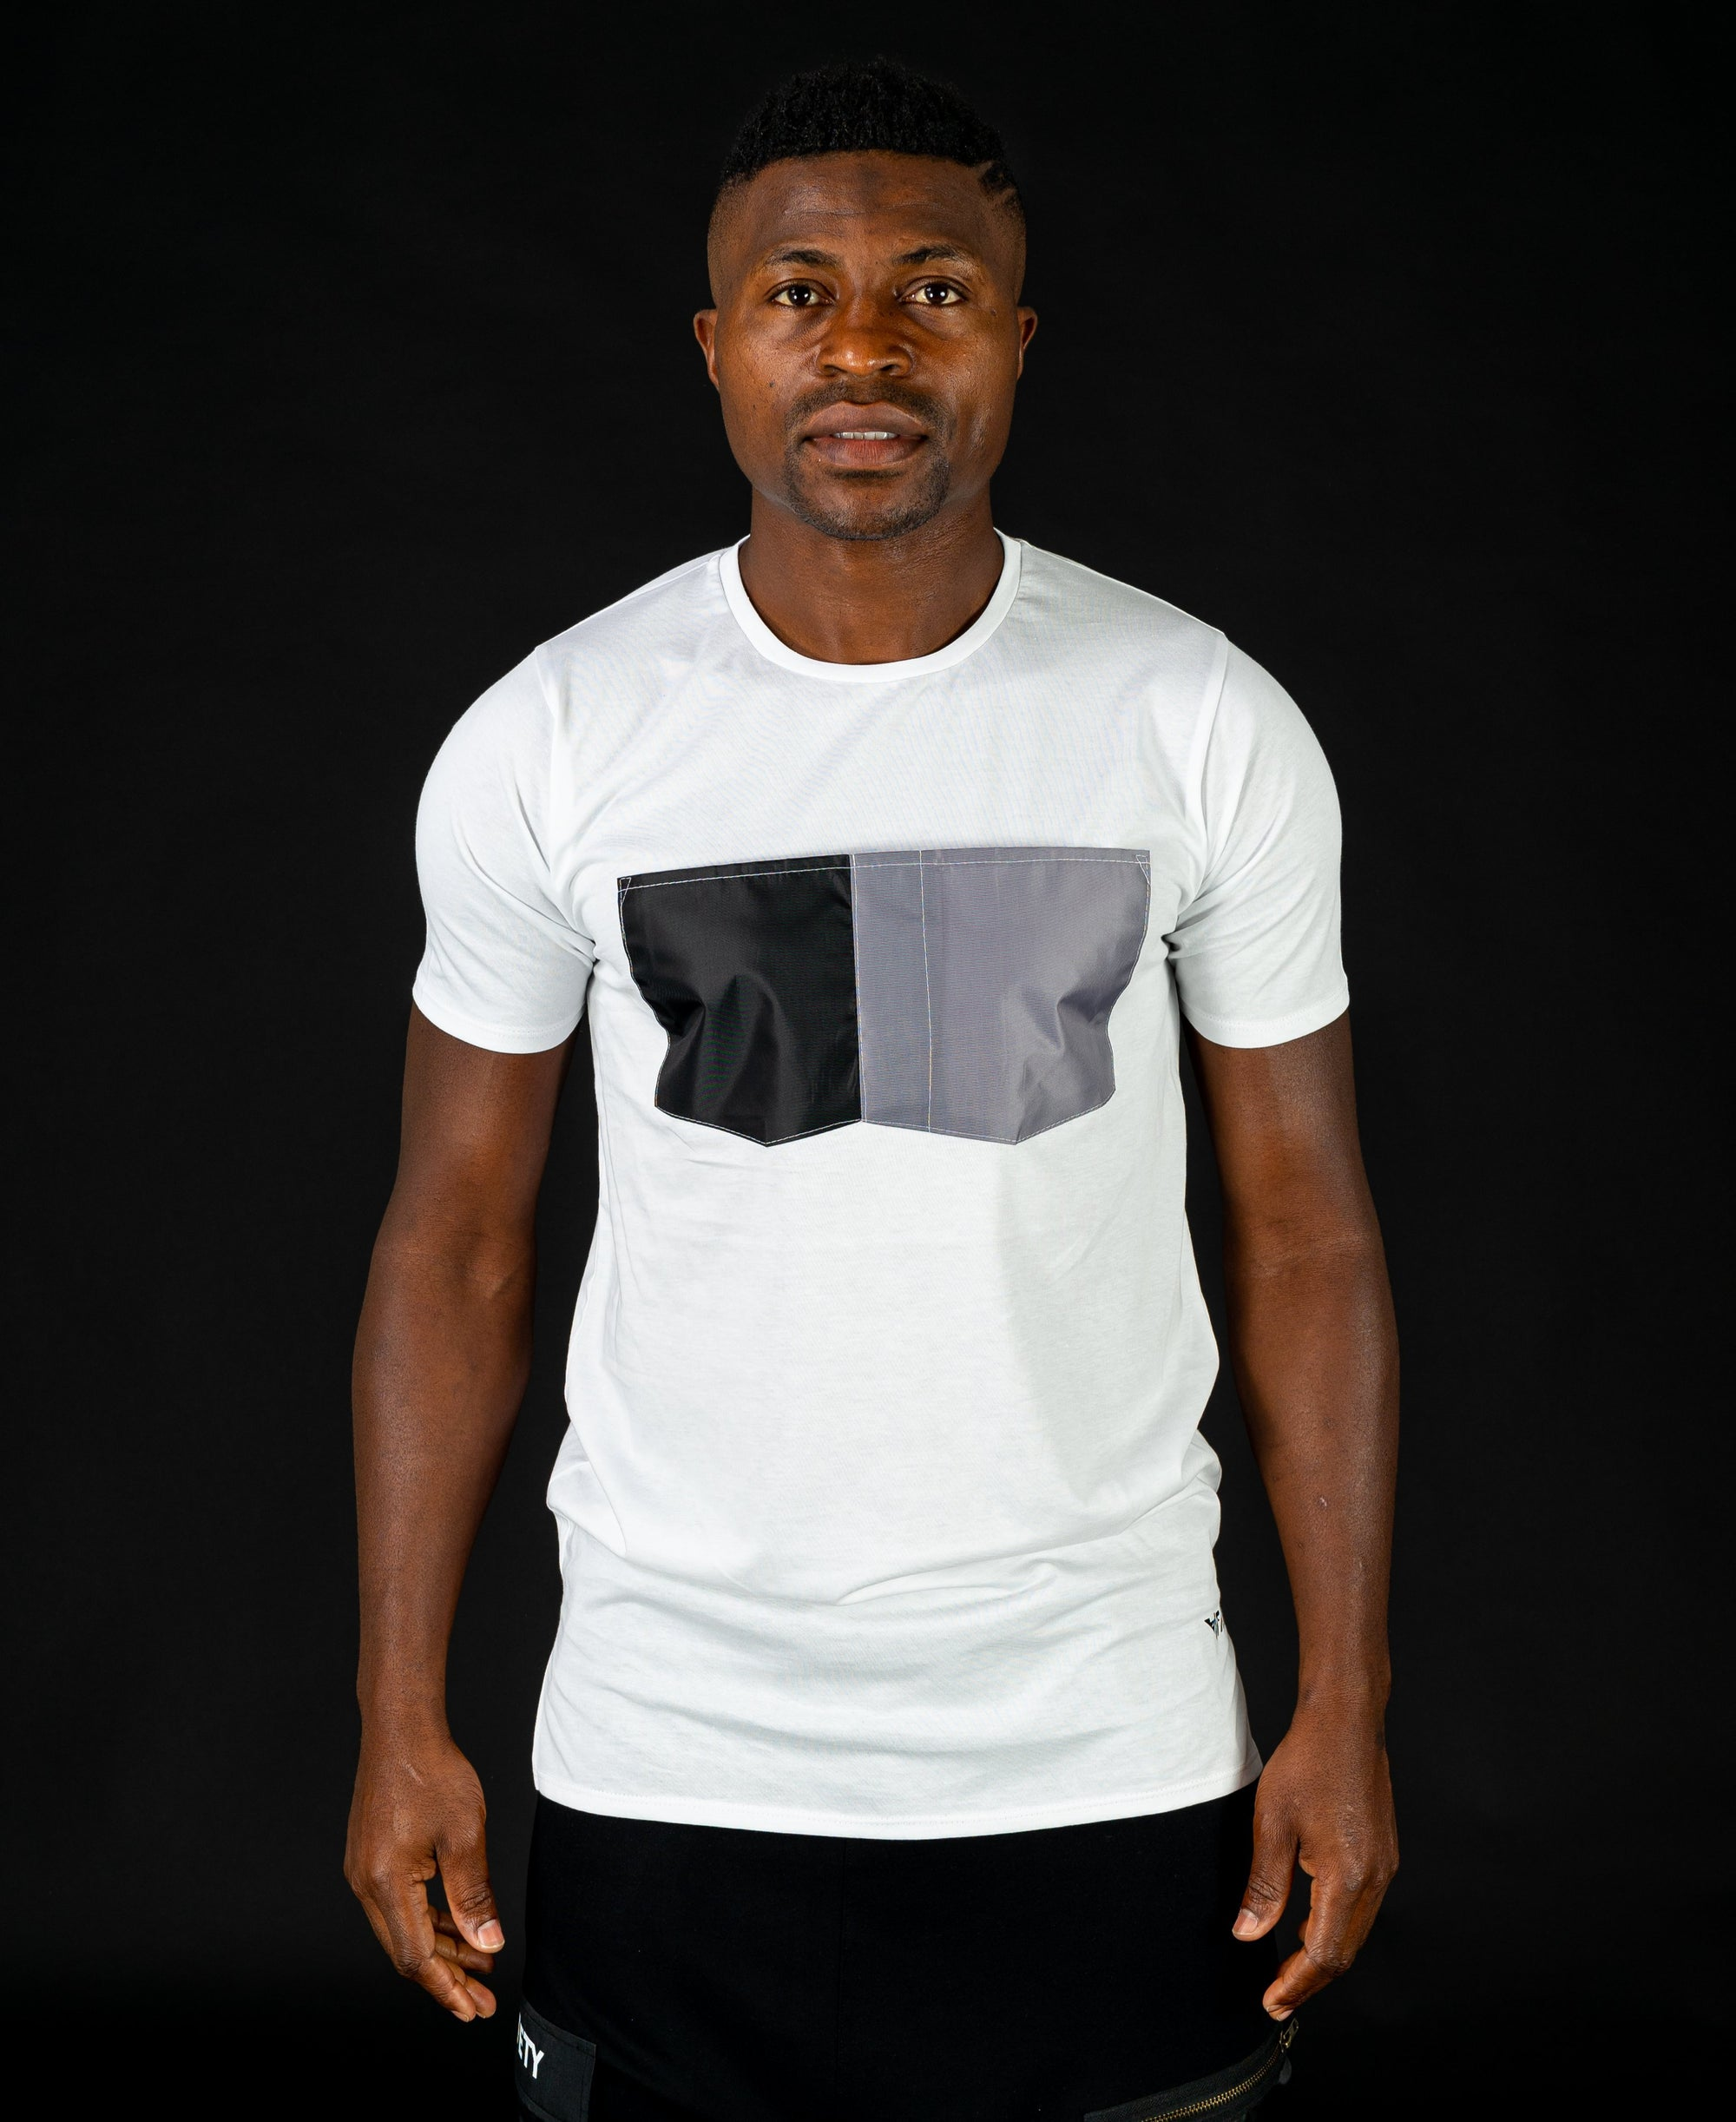 White t-shirt with black and grey design - Fatai Style